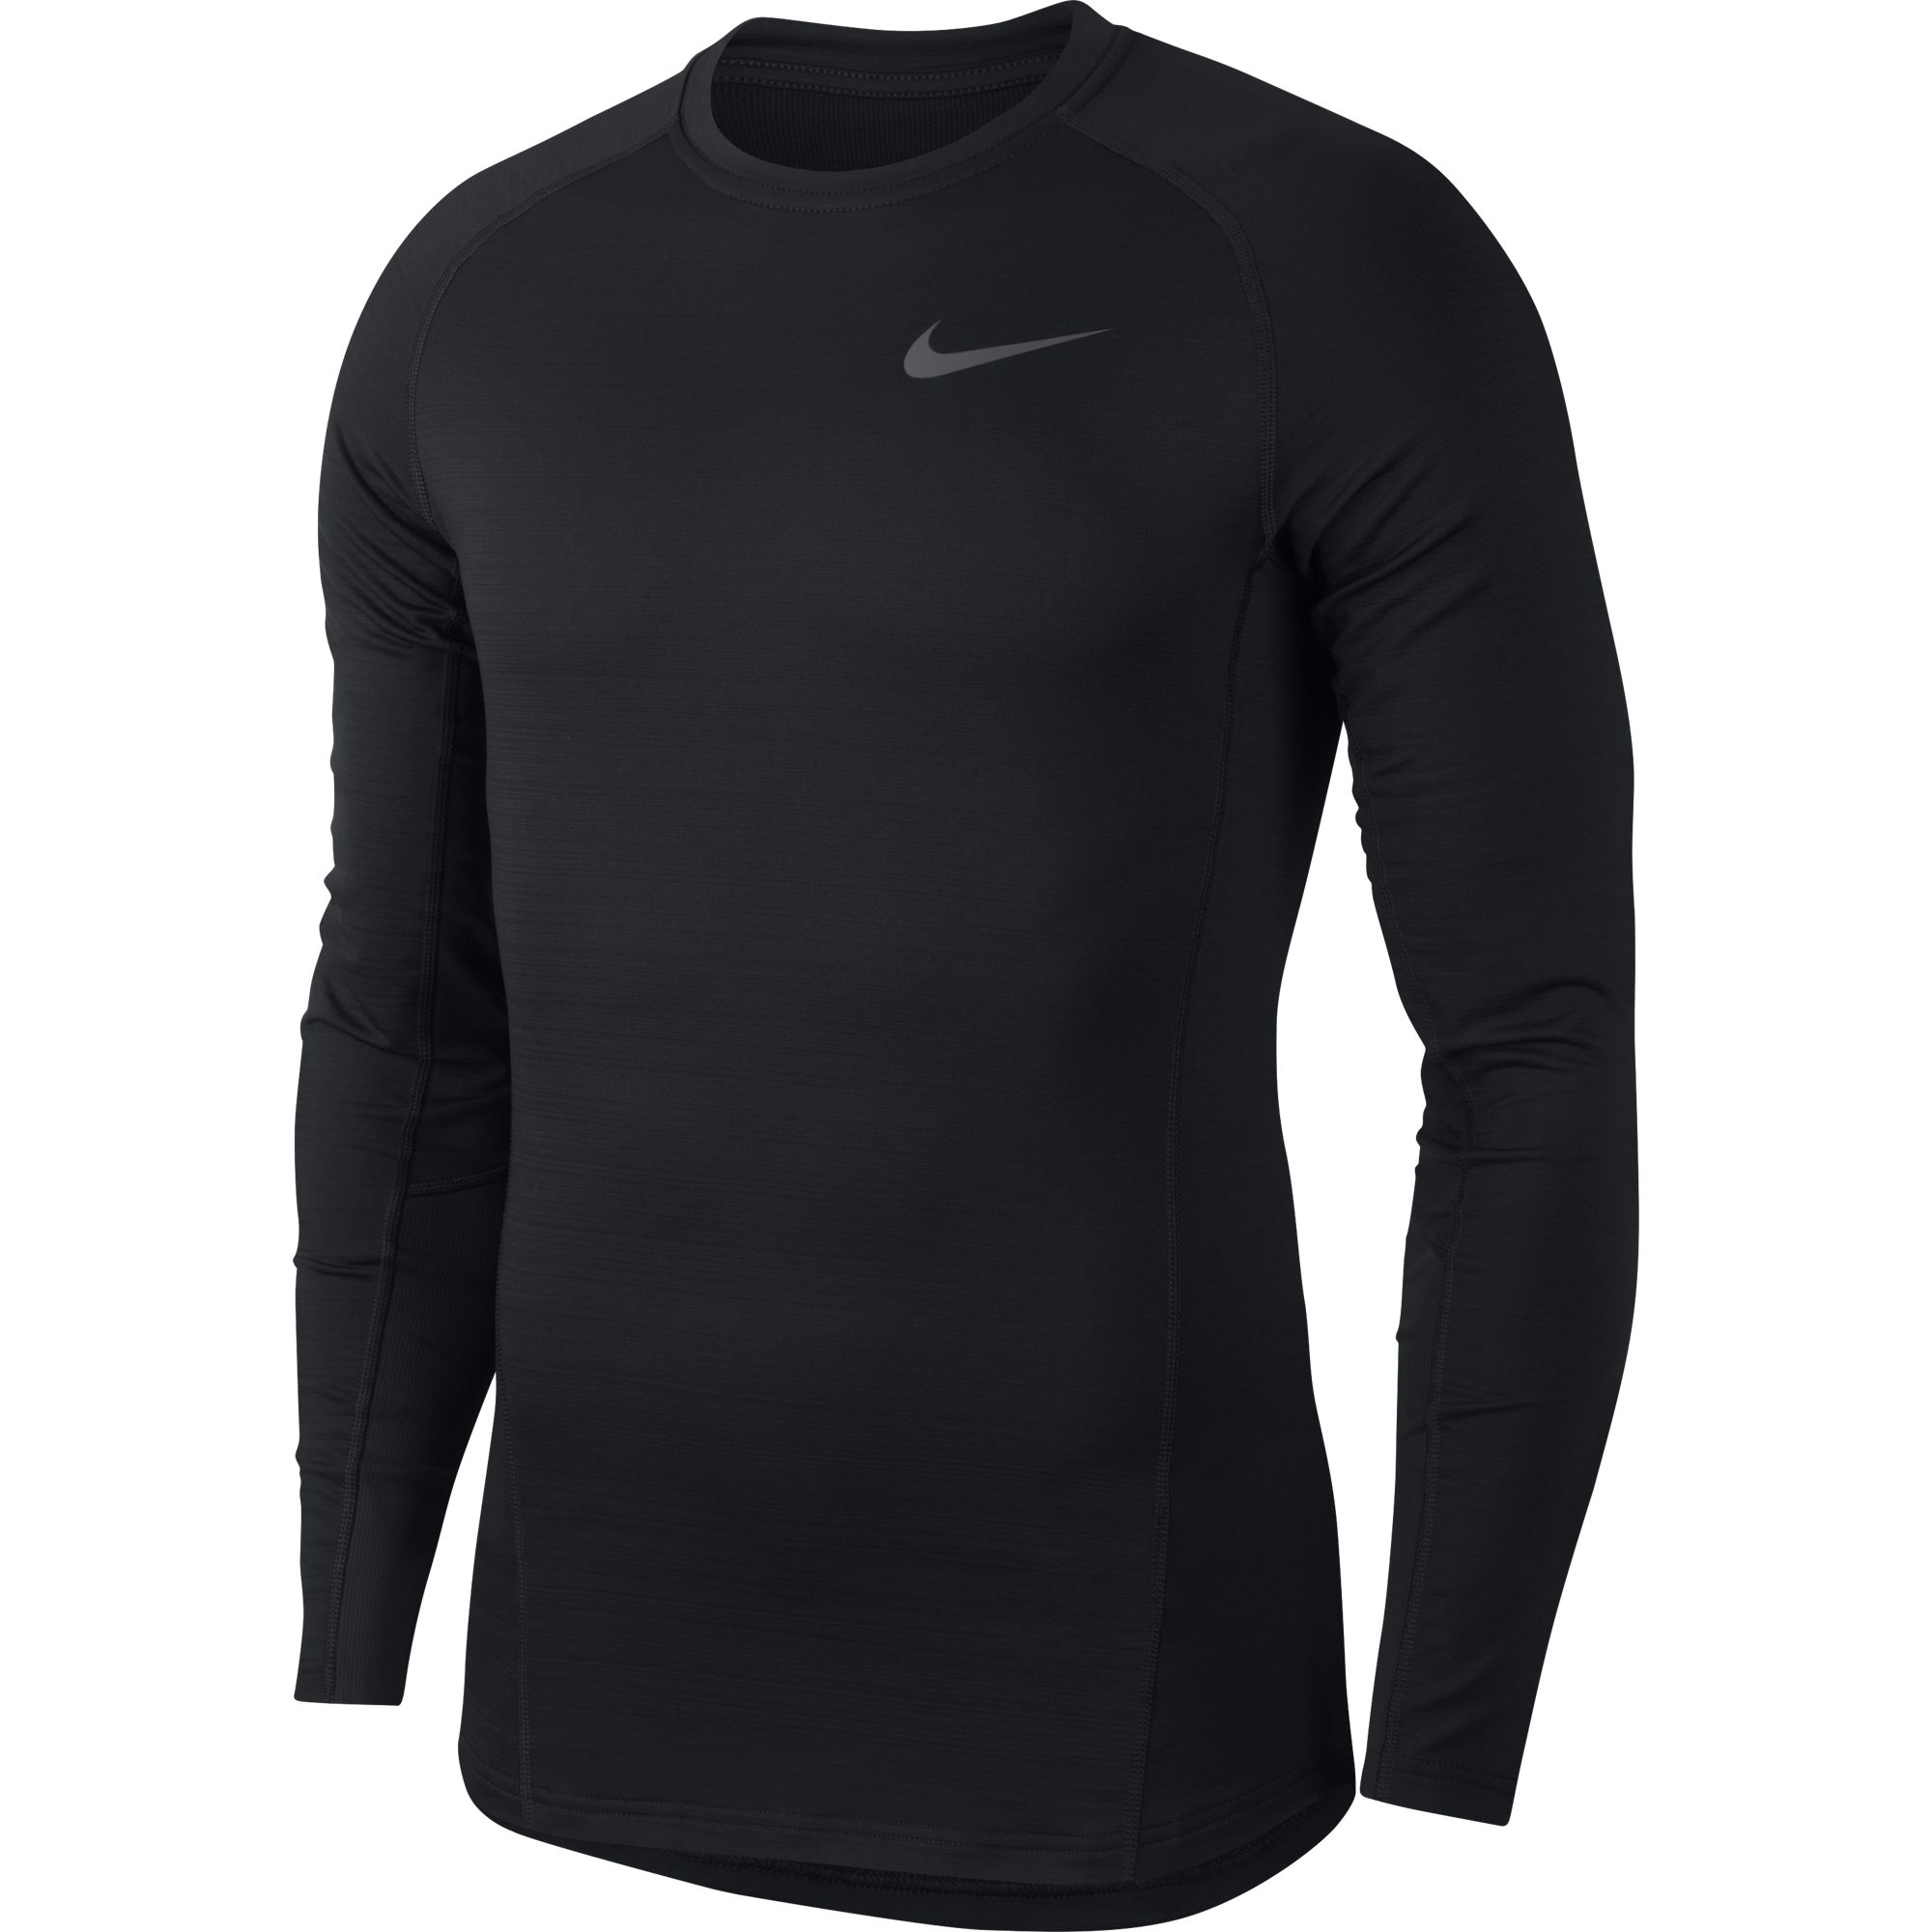 Men's Pro Therma Cold Compression Long Sleeve Shir, Black, swatch